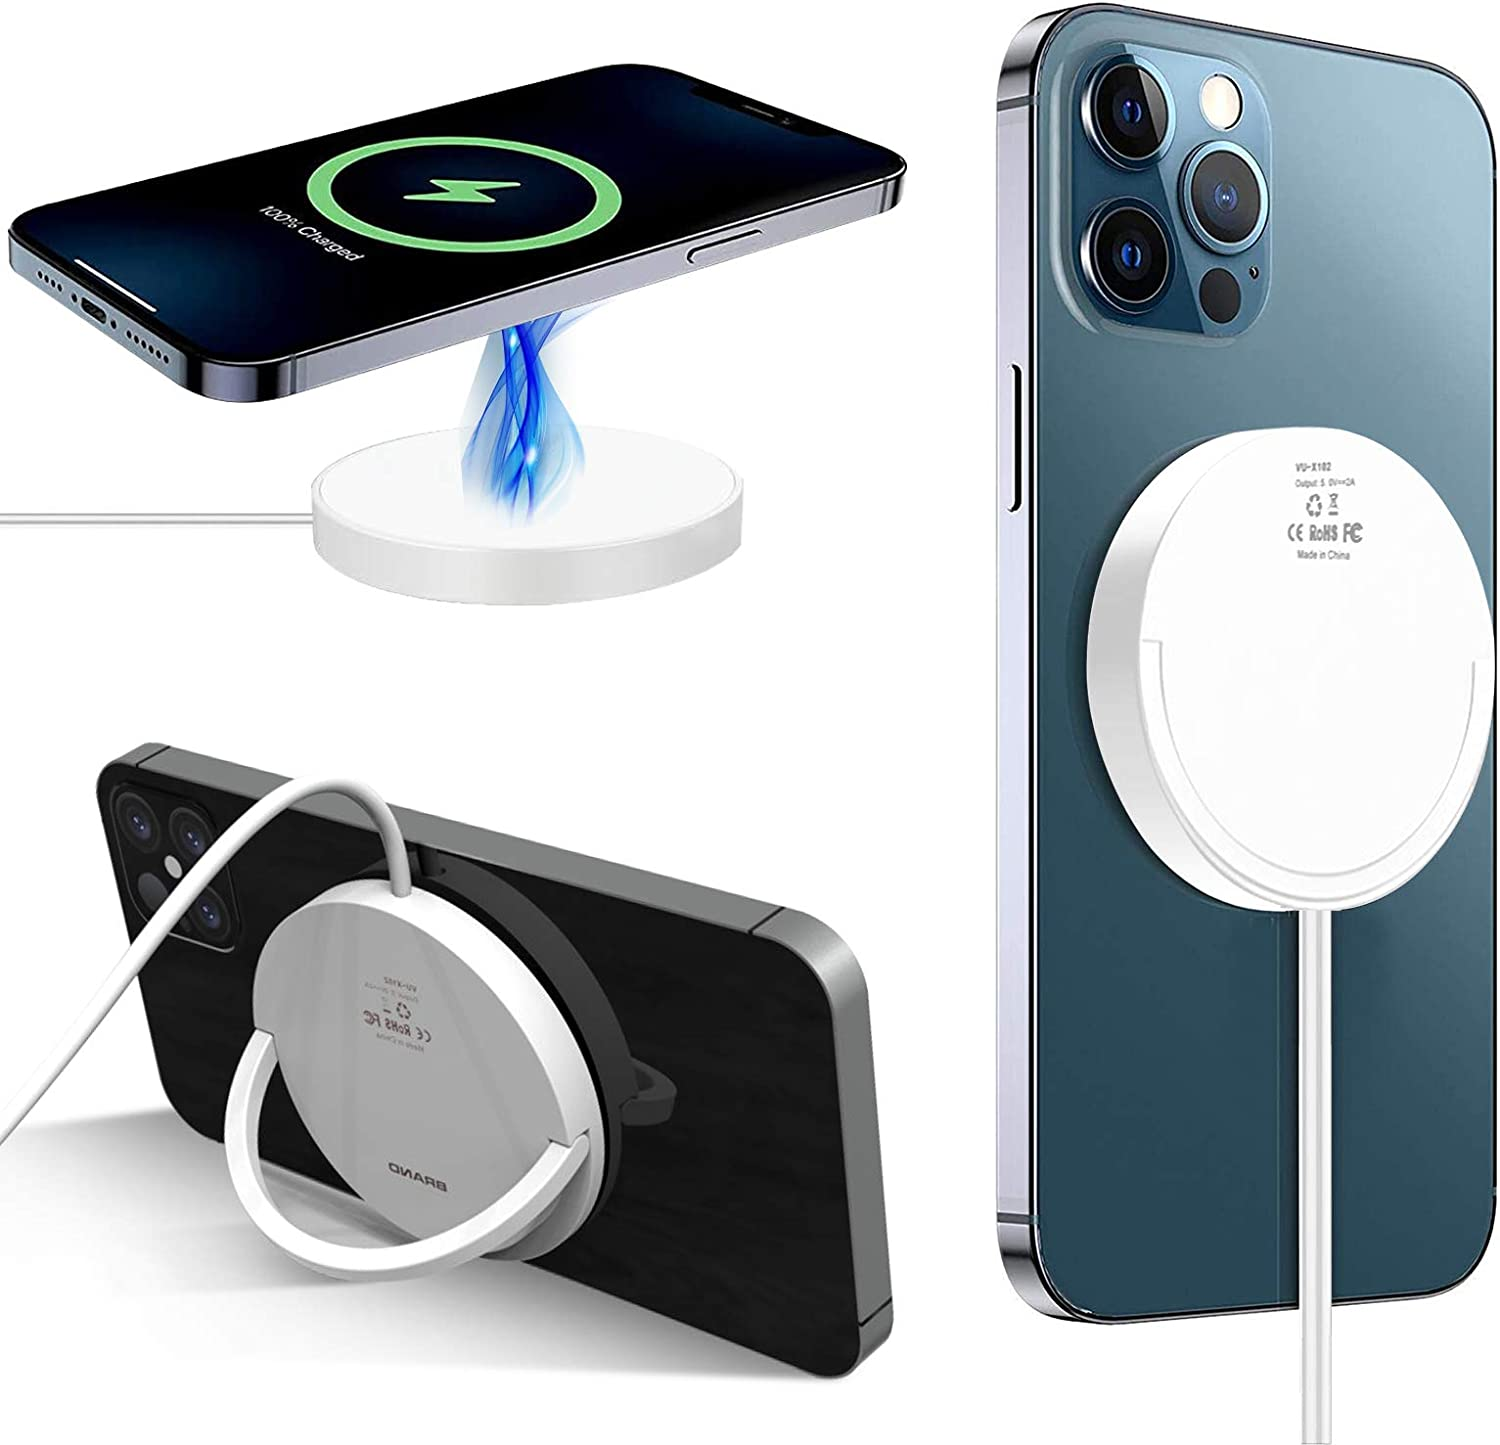 15W Fast Wireless Charger Compatible with iPhone 12 Series Magsafe, 2 in 1 Portable Qi Wireless Charging Pad with Foldable Phone Stand Compatible with iPhone 12 Pro Max All Qi Devices (White)